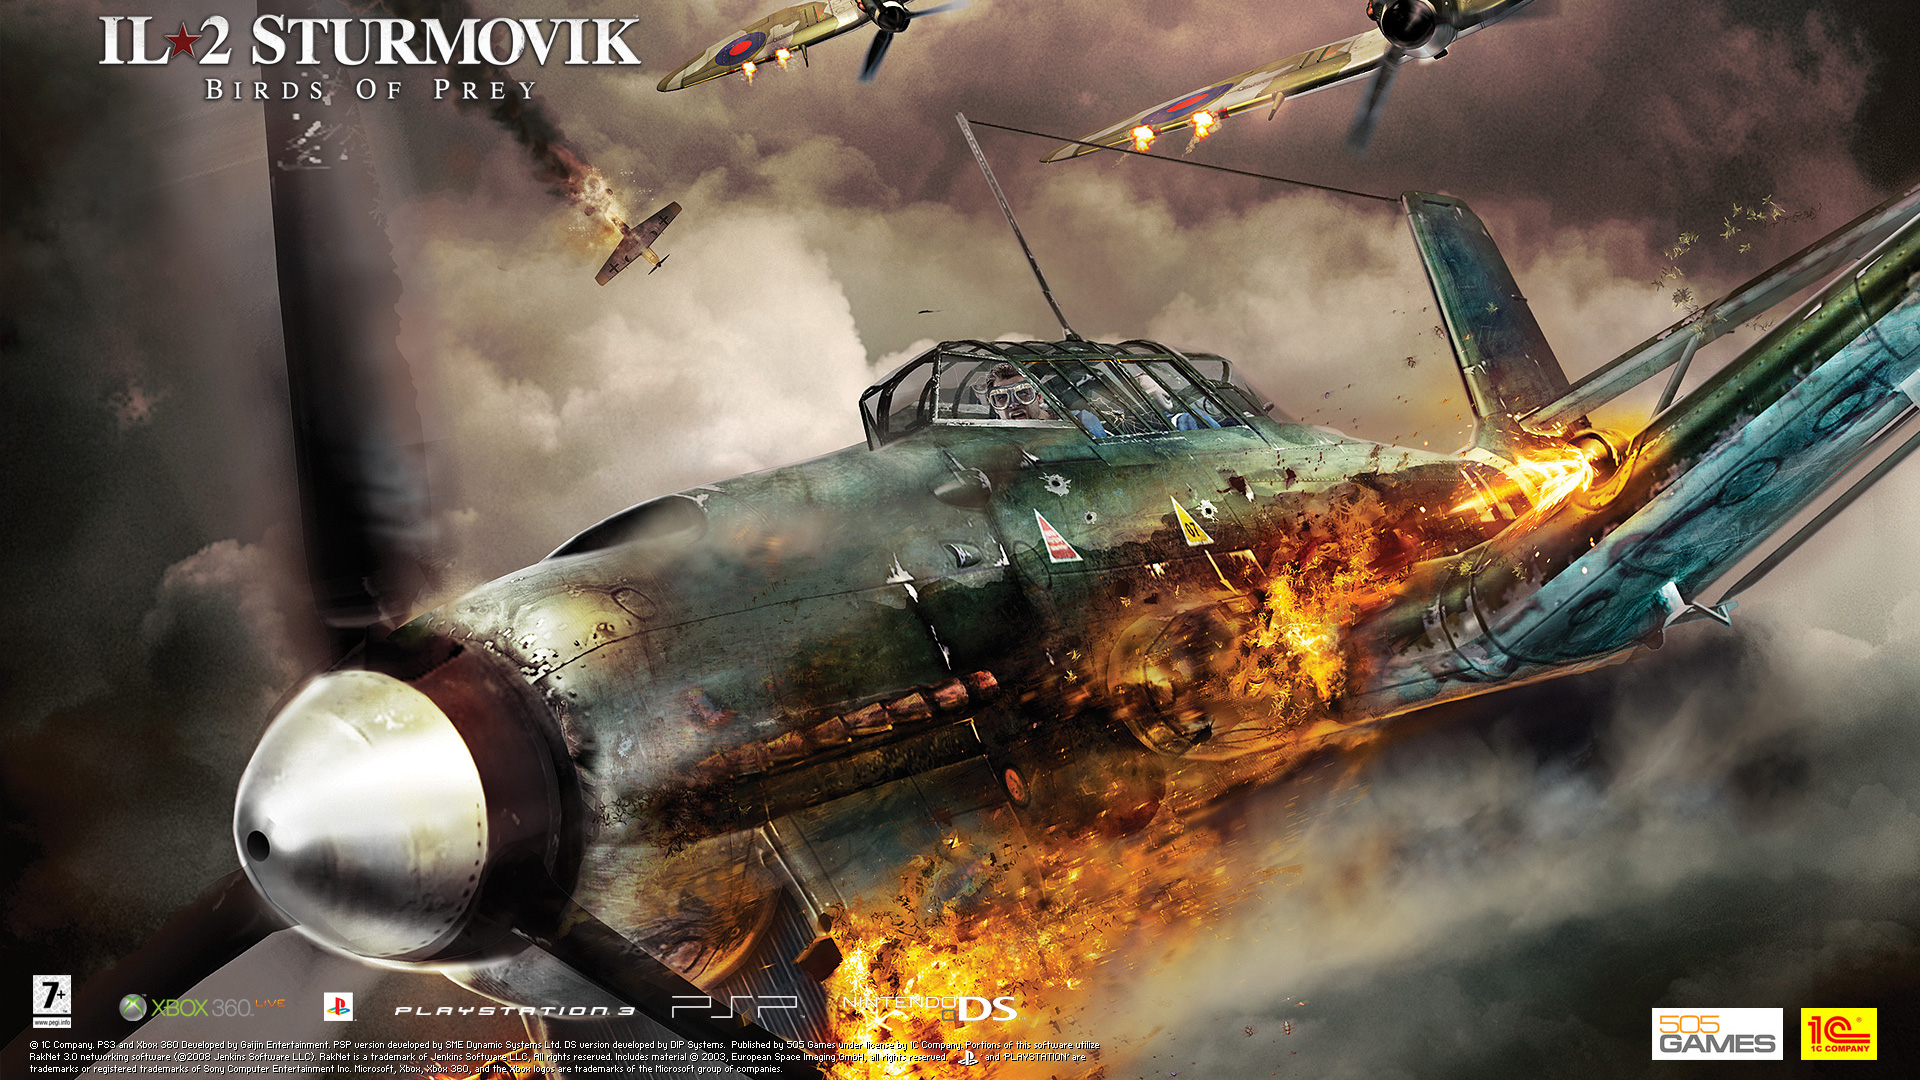 Free IL-2 Sturmovik: Birds of Prey Wallpaper in 1920x1080